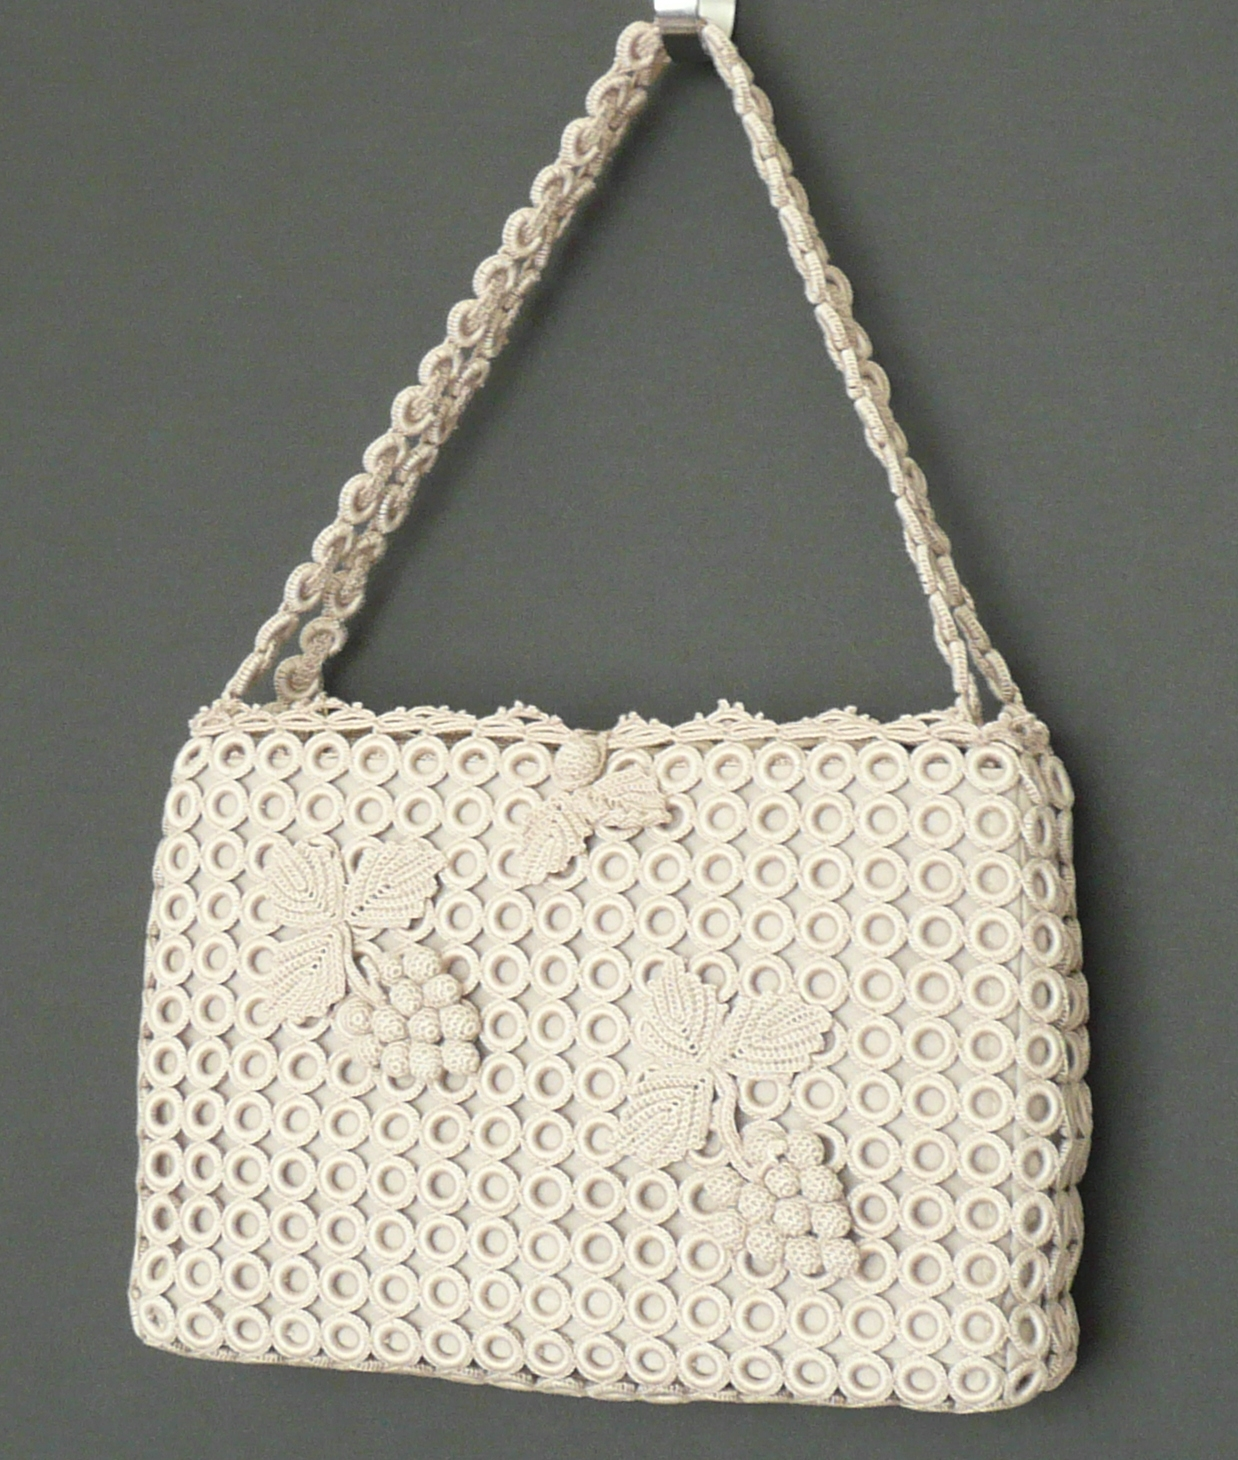 Designer Crochet Handbags : Crochet Guild of America 2010 Design Competition Results Doris Chan ...